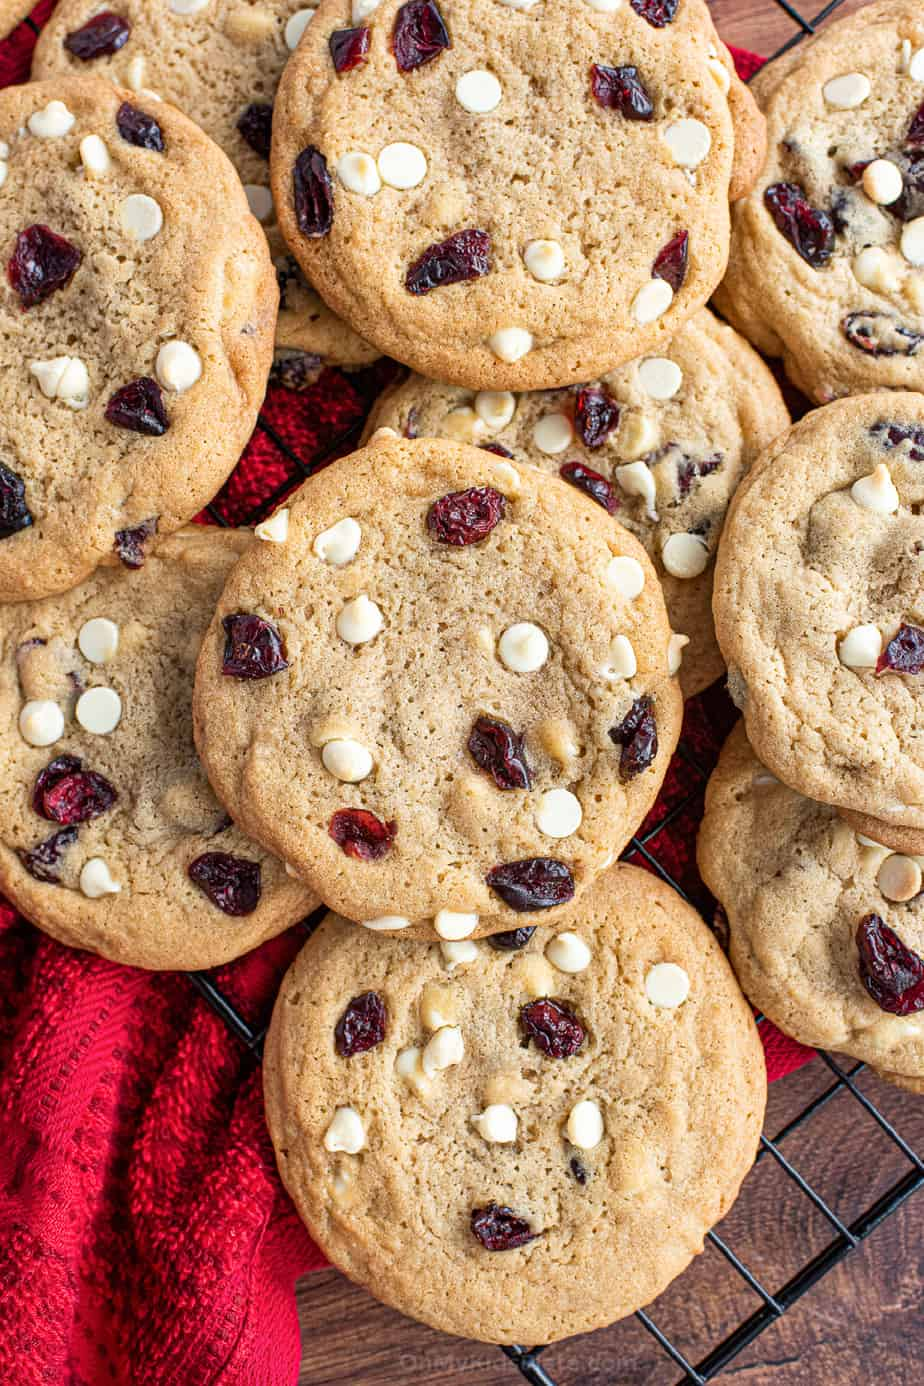 White chocolate chip and cranberry cookies stacked on a wire rack form overhead.